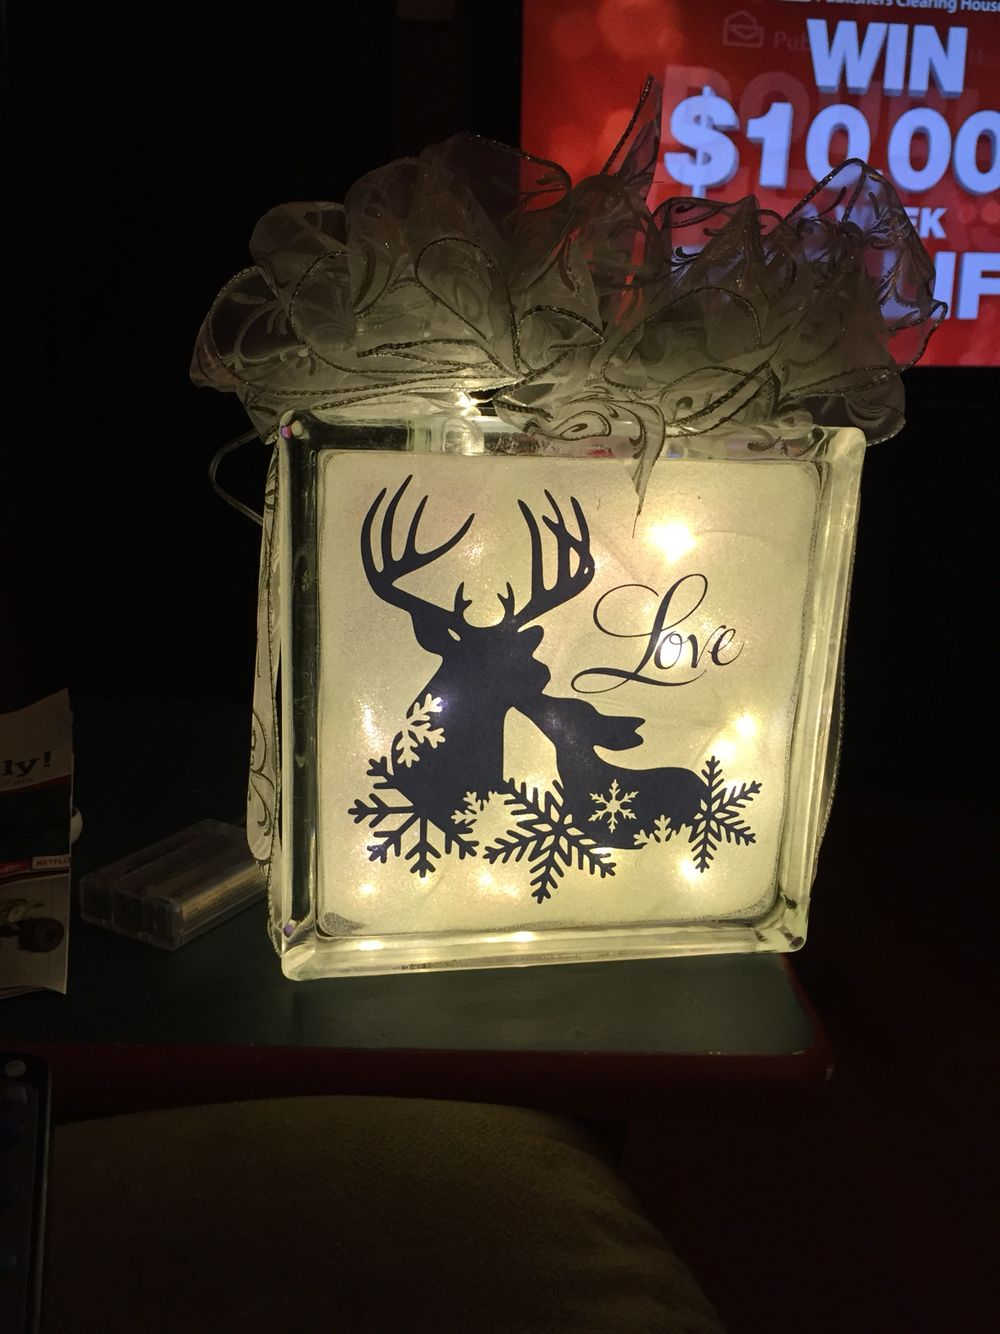 Glass blocks for crafts pre drilled - Lighted Glittered Glass Block Deer Image From Silhouette